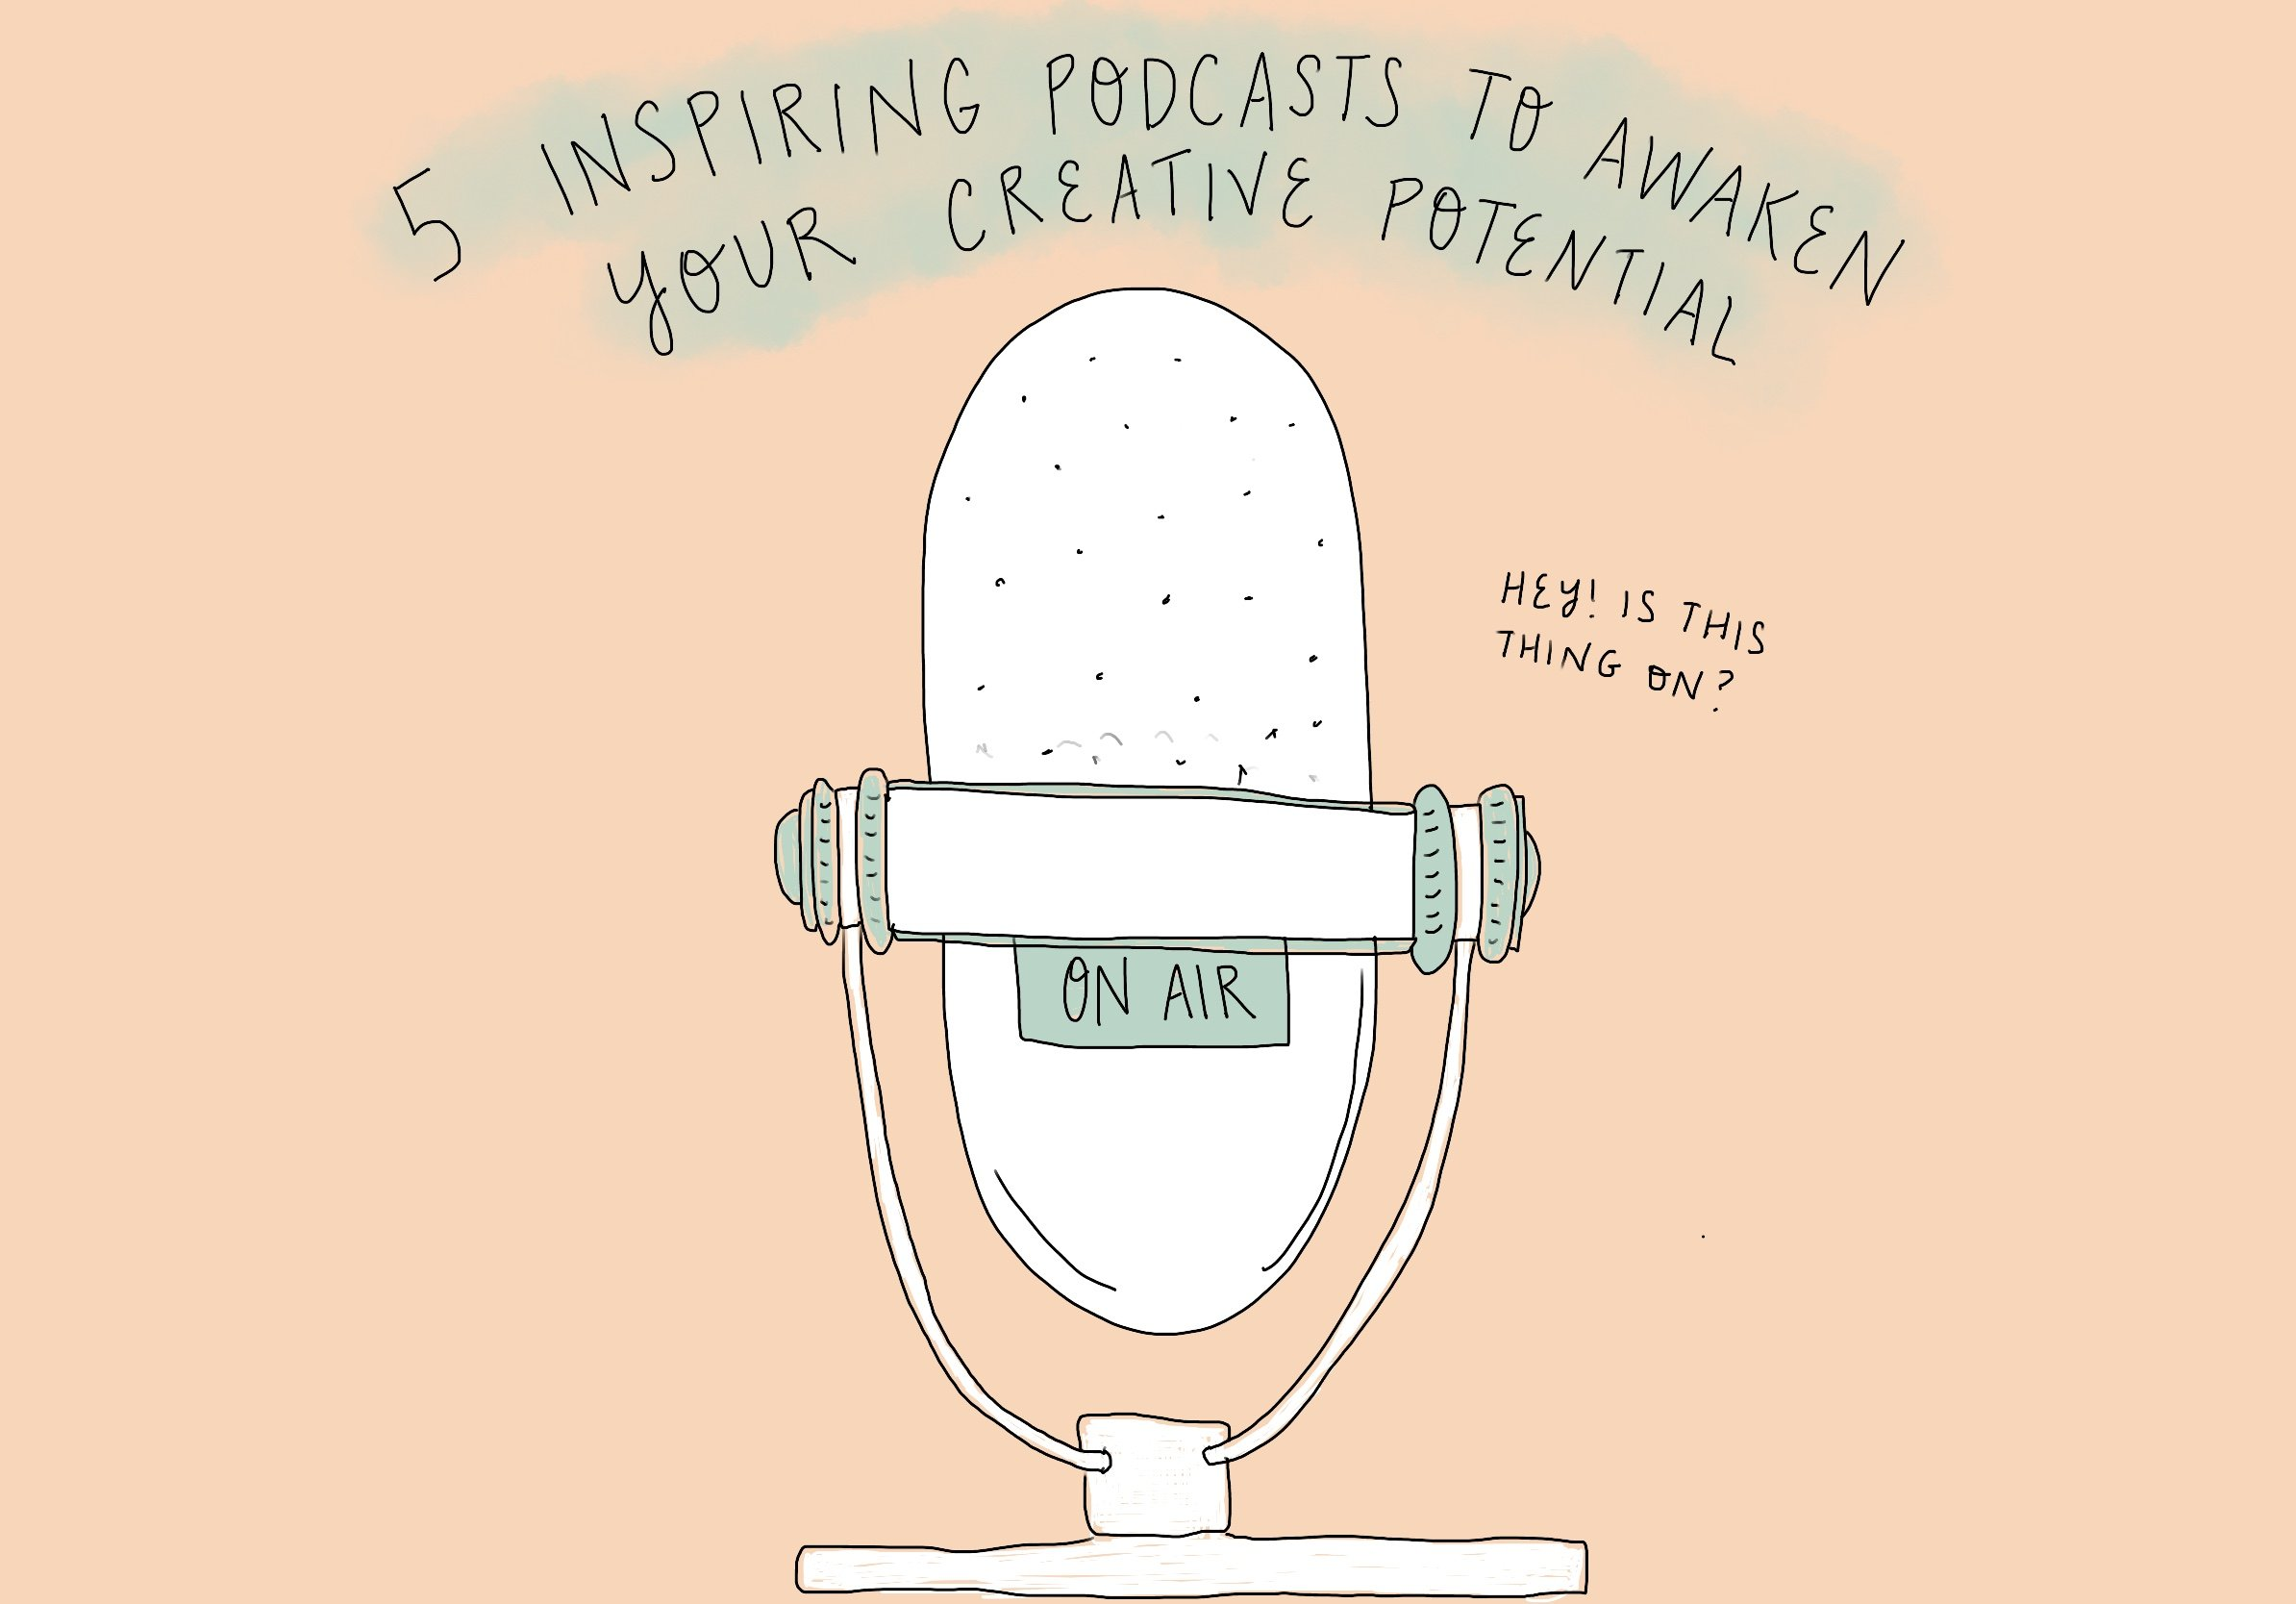 5 inspiring podcasts to awaken your creative potential on feelgood fibers